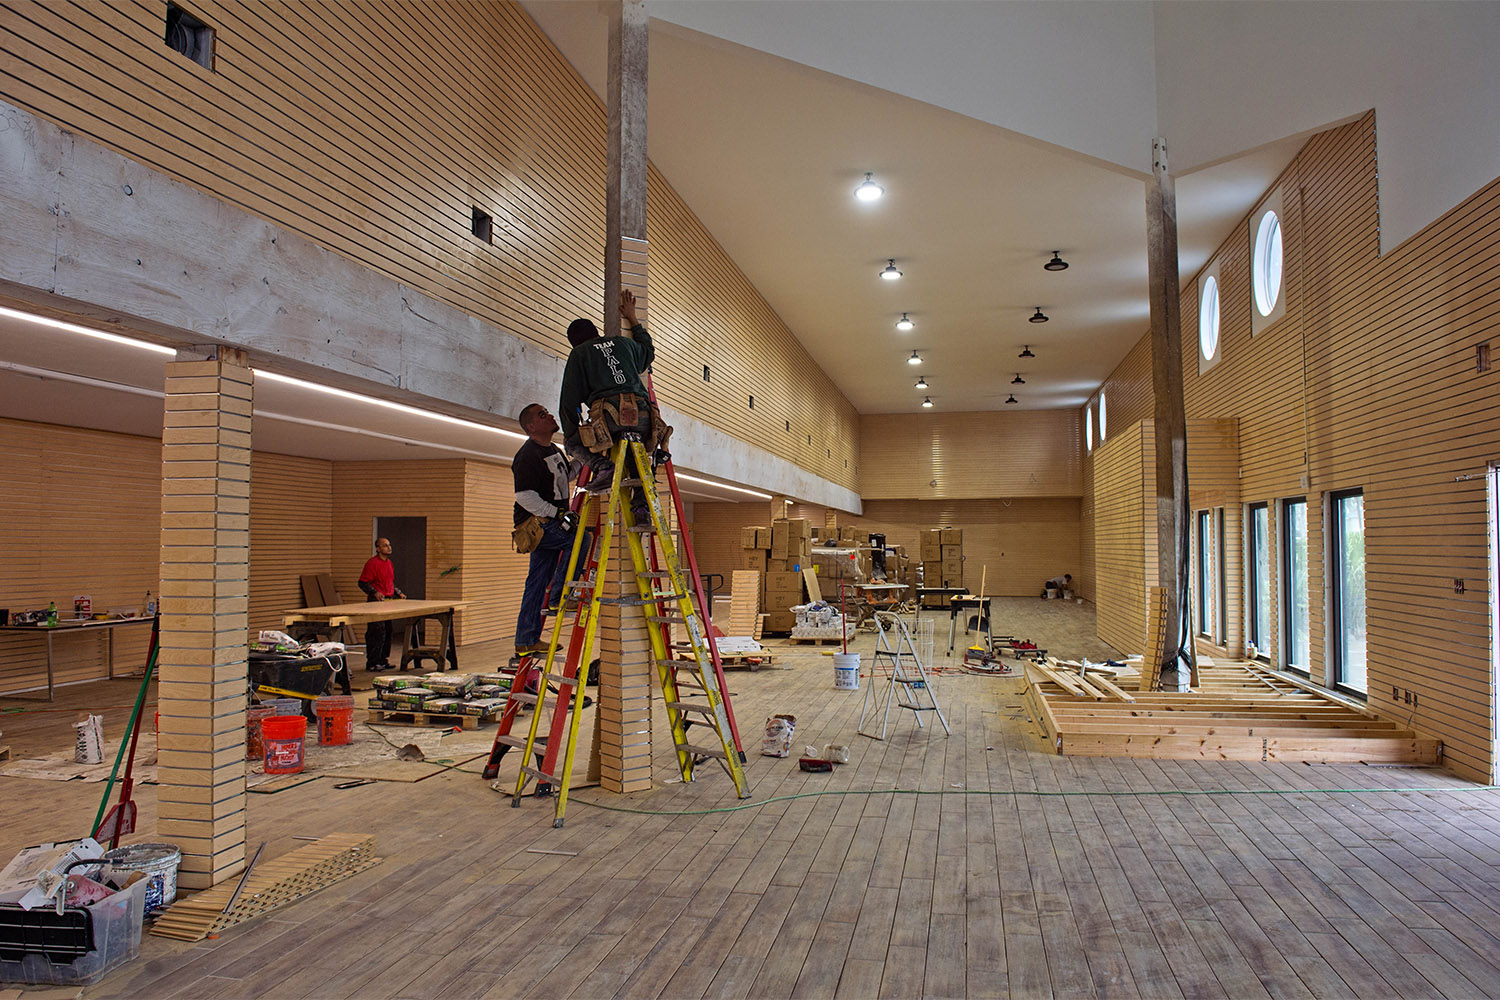 Workers prepare the interior of Third Coast Beach Co. in February 2018. The store was flooded with 31 inches of water when Hurricane Harvey hit. The owner is expecting to be open in 2 weeks.